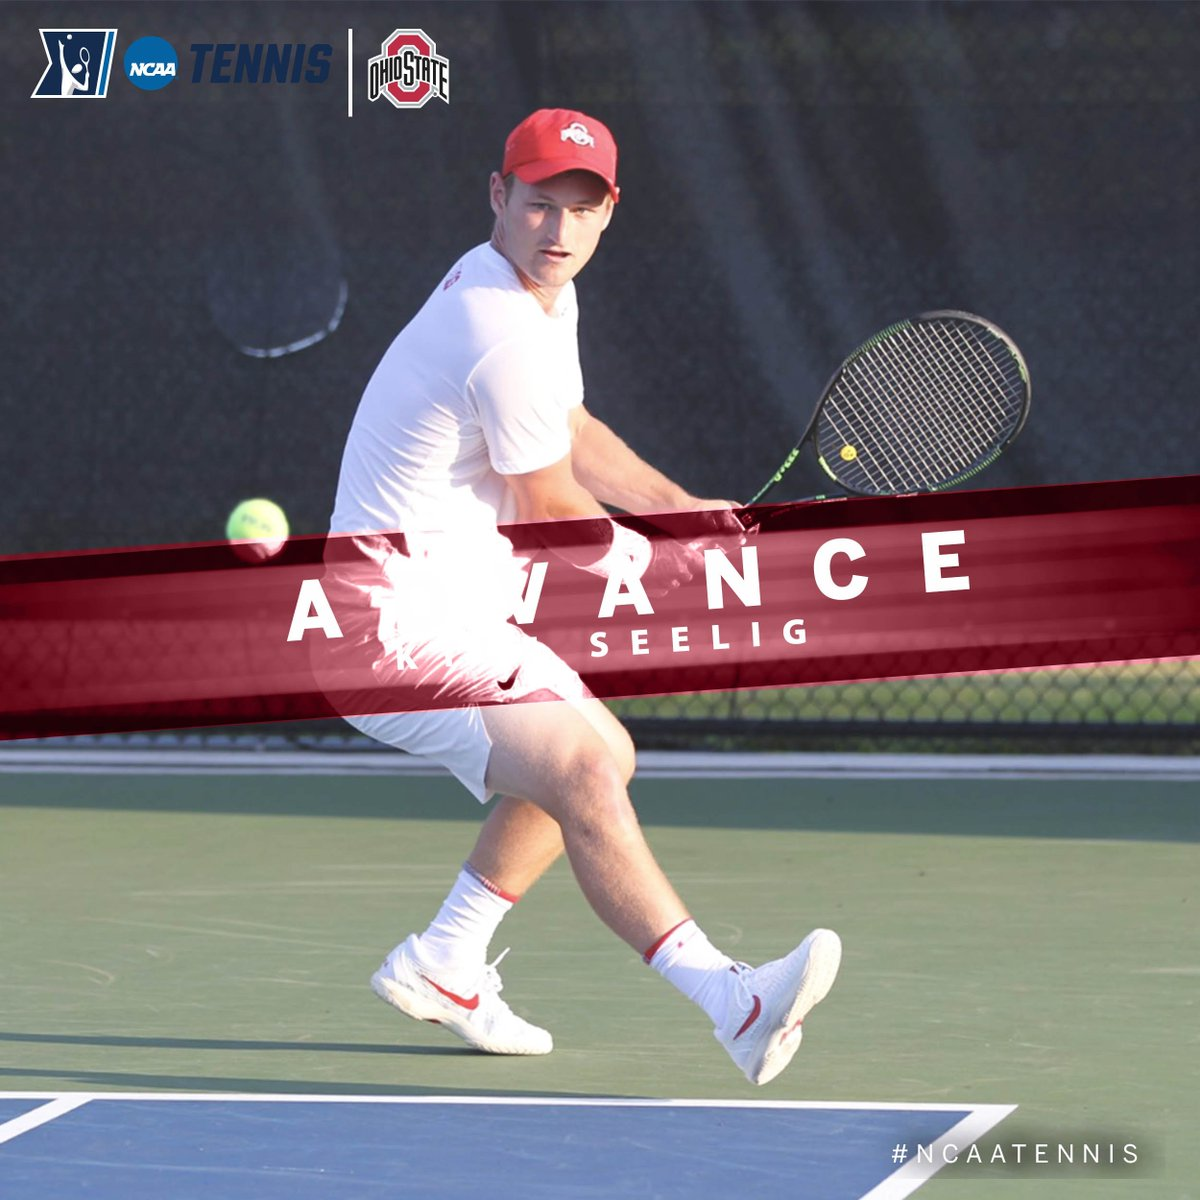 On the men's side at the @NCAATennis Singles First Round, Kyle Seelig of @OhioStateMTEN defeated Alastair Gray of TCU, 6-4, 6-2, to move on to the Second Round. #B1GMTennis